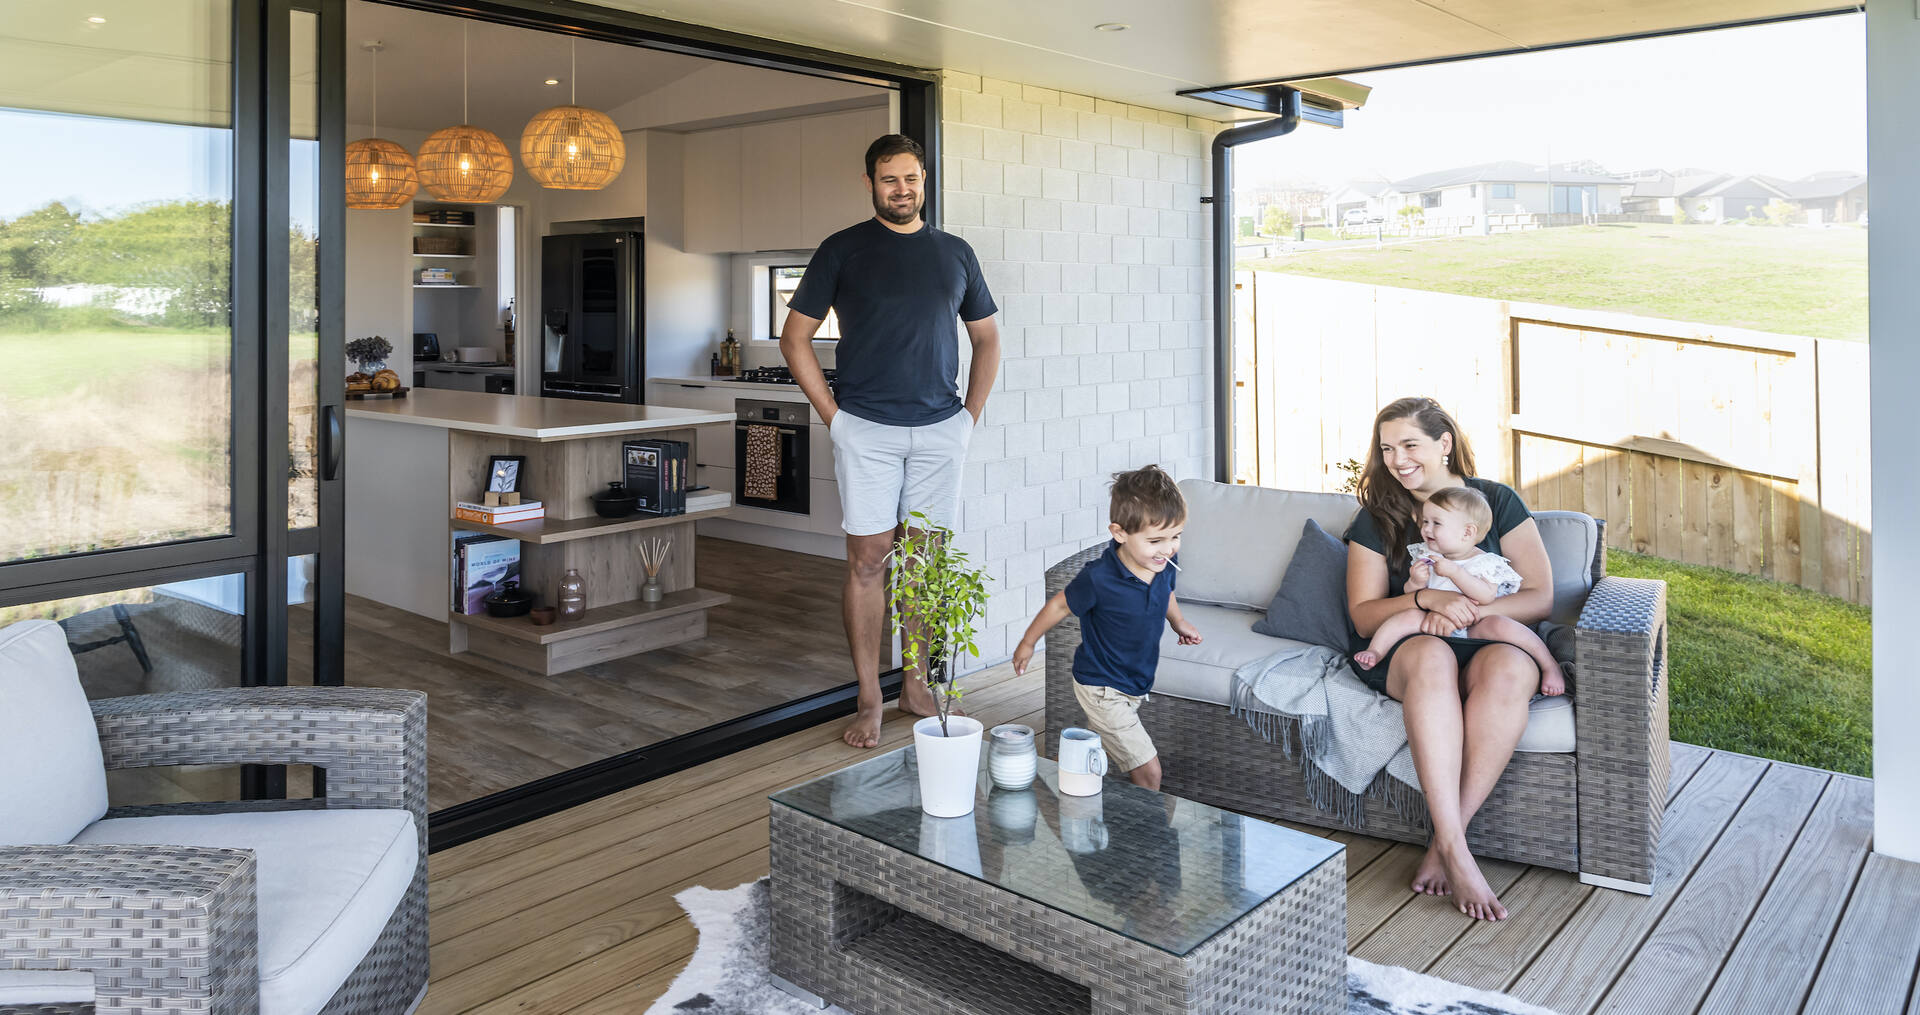 How this family expertly built their stylish first home with resale in mind